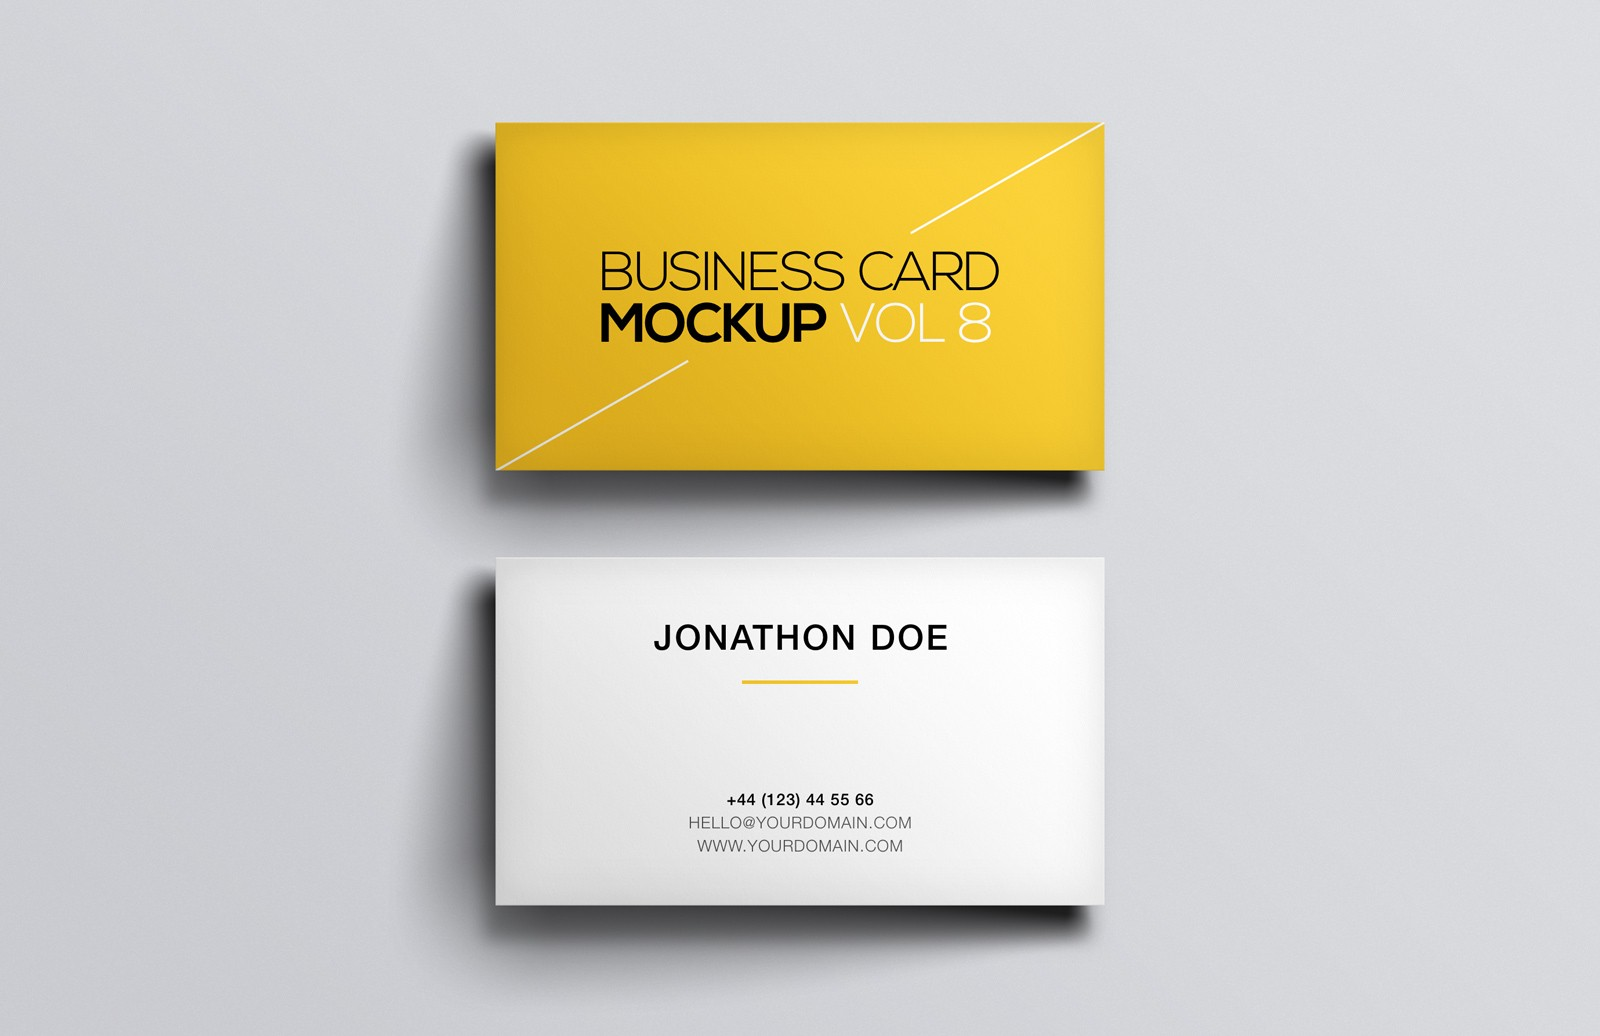 Business card mockup vol 8 medialoot business card mockup vol 8 preview 1 reheart Image collections